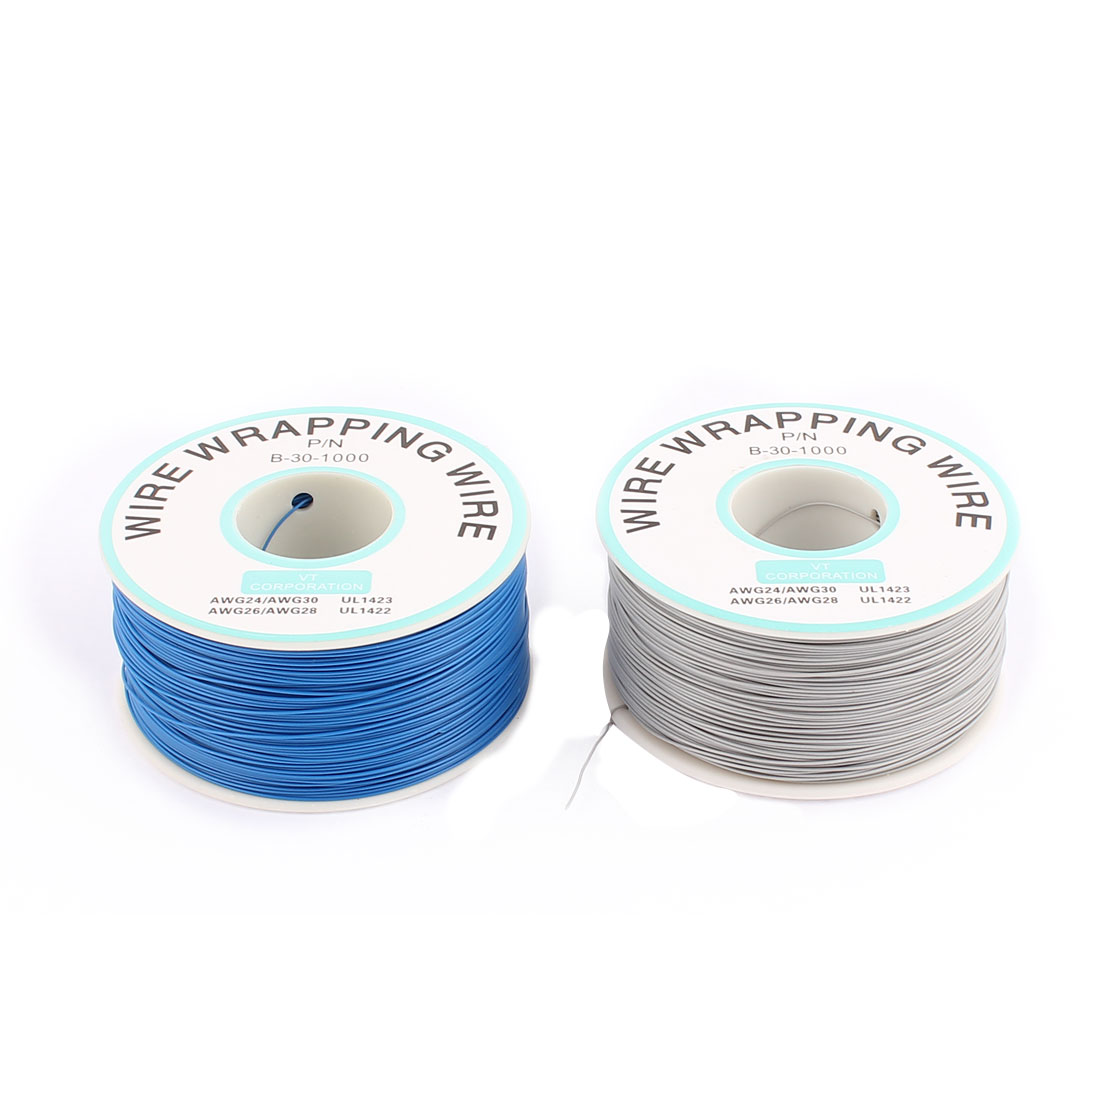 2 Pcs High Temperature Resistant Wraping Wire B-30-1000 Blue and Grey